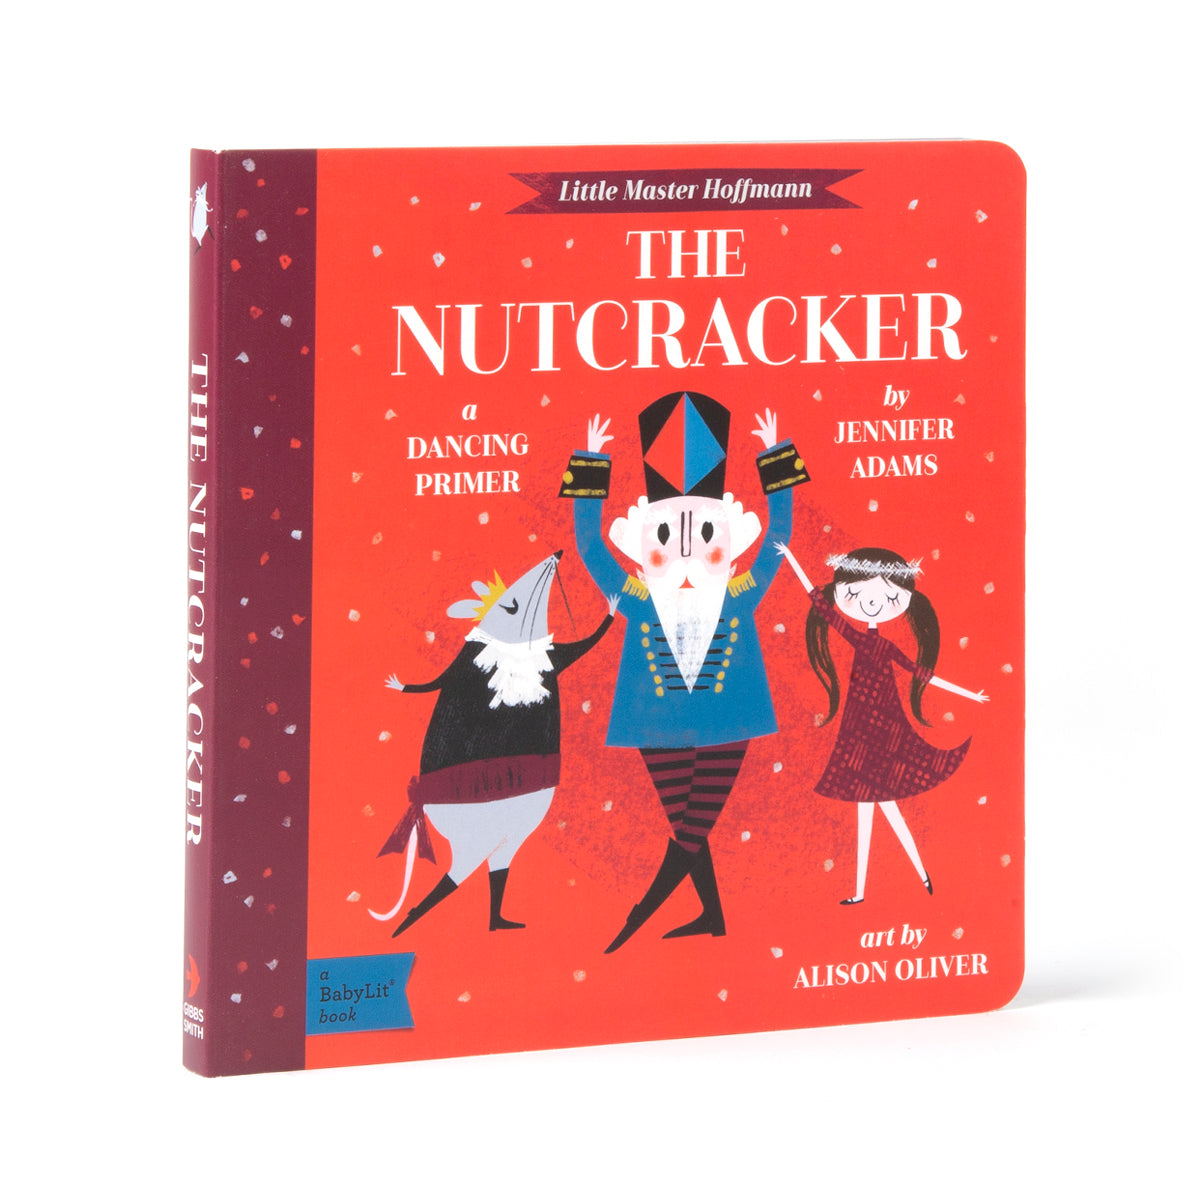 The Nutcracker: A Dancing Primer